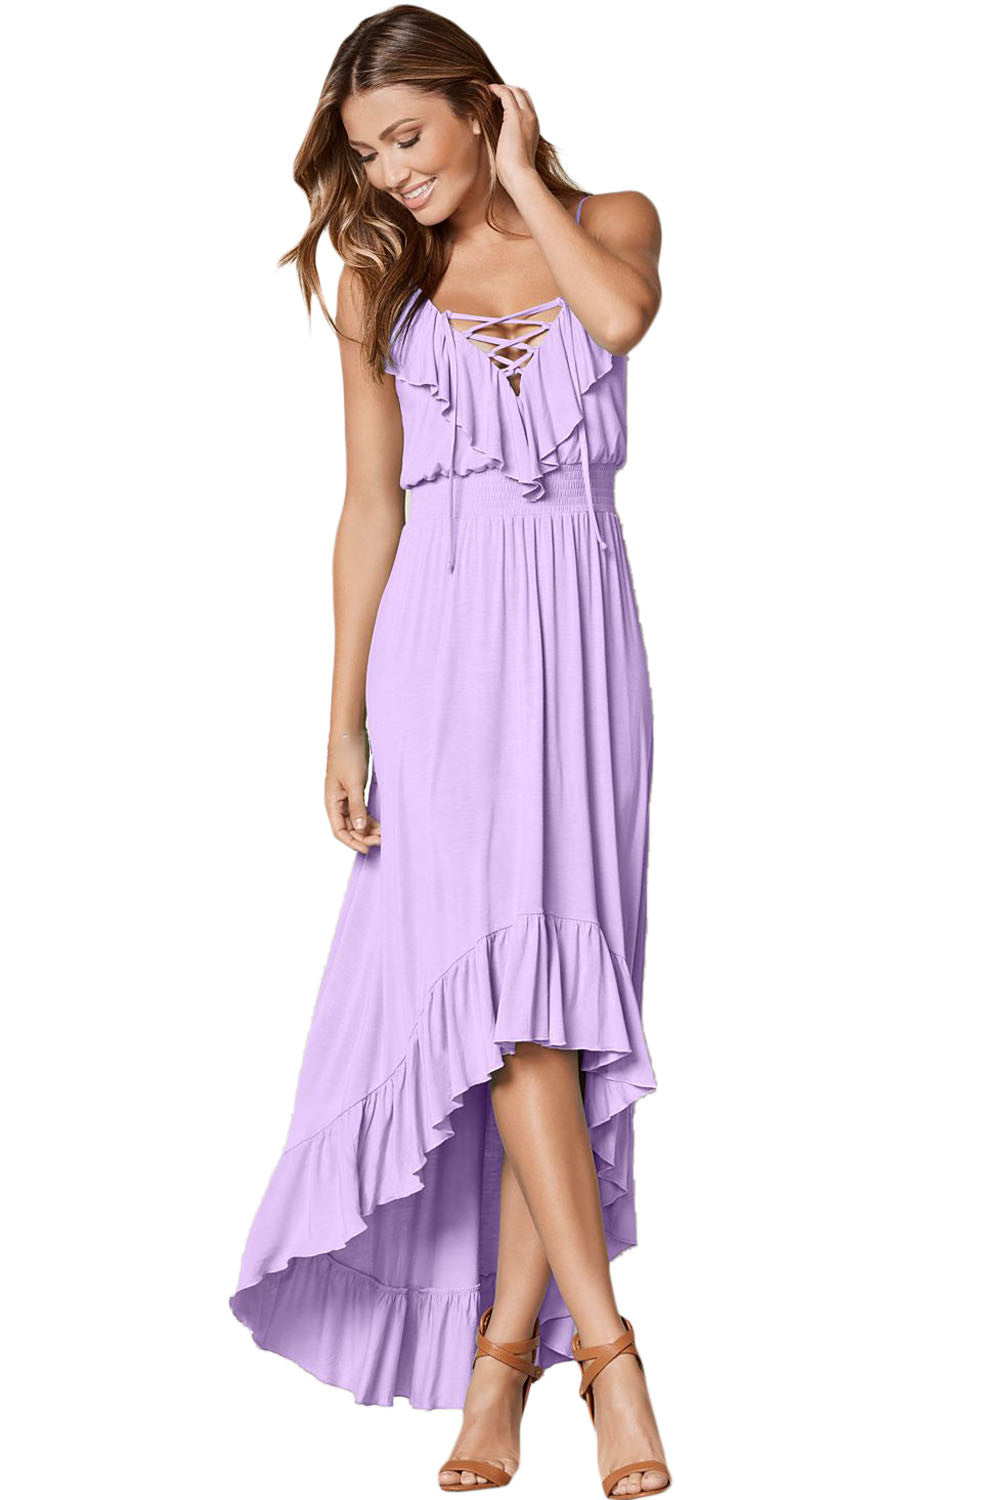 Her Fashion Pink Lace Up V Neck Ruffle Trim Timeless Maxi Dress